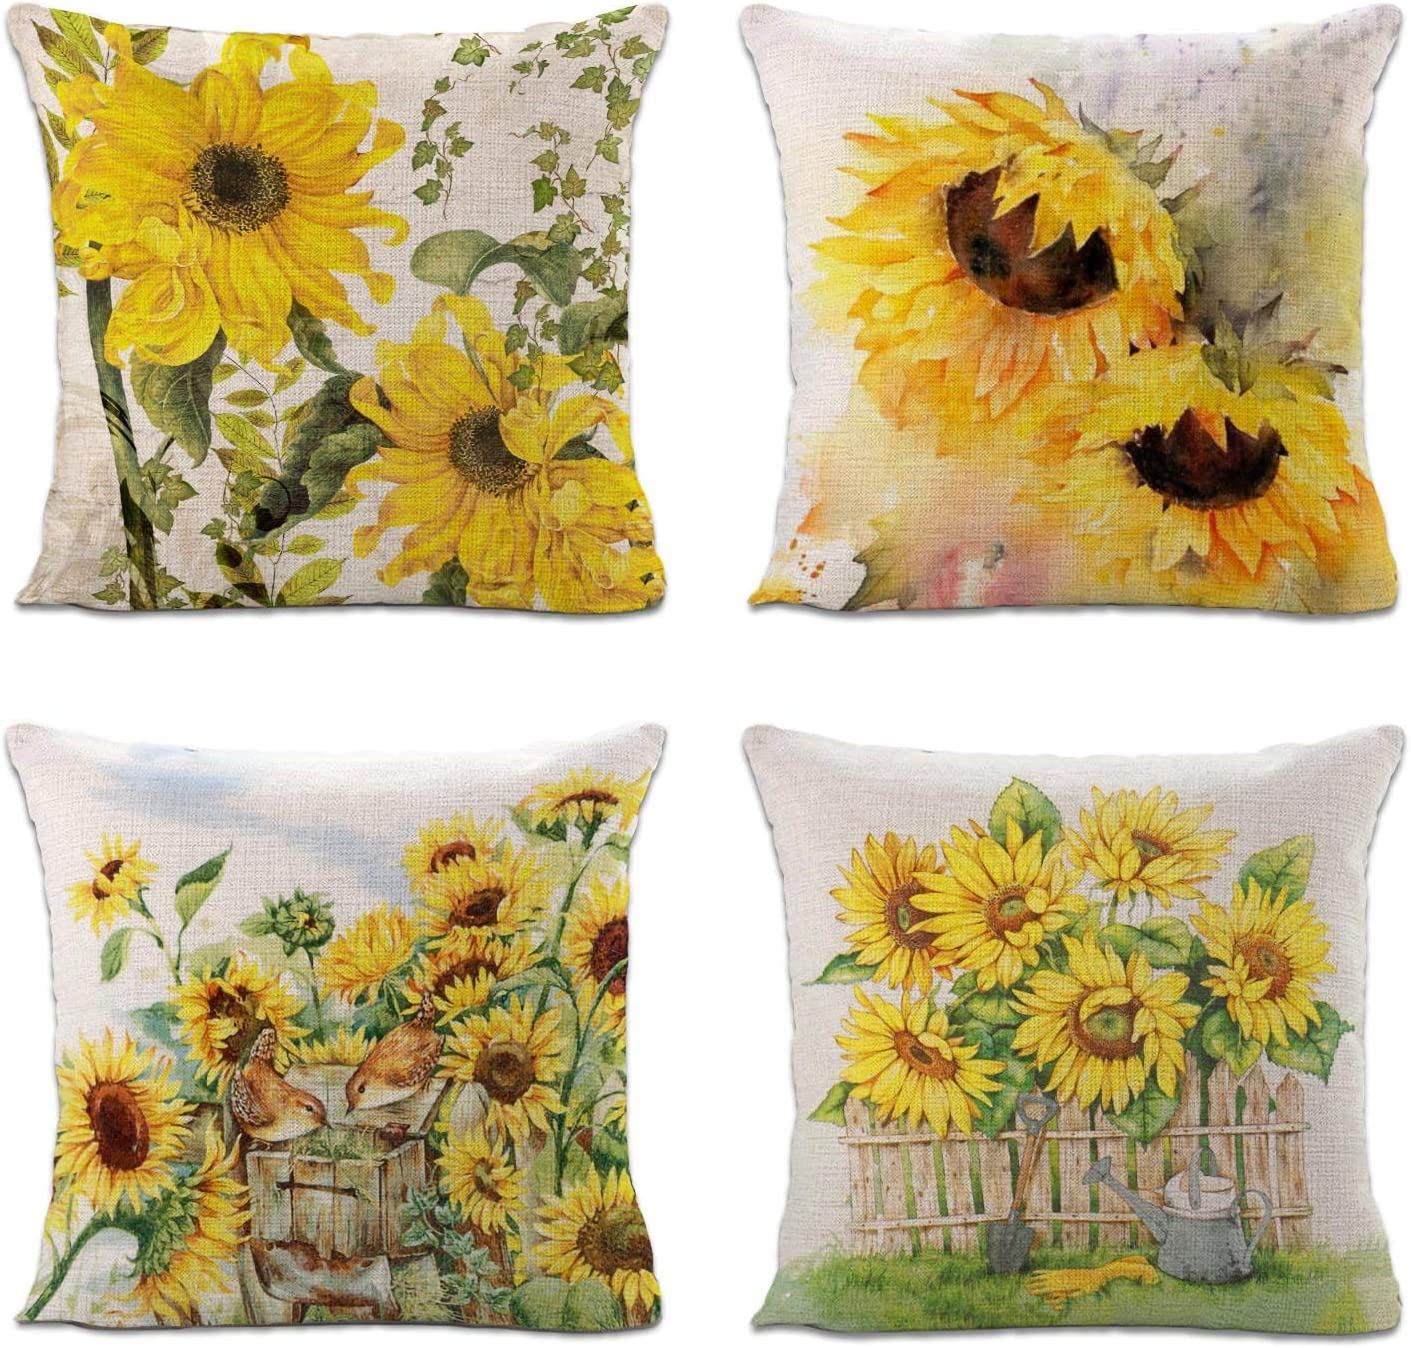 Sinpooo Spring Flower Throw Pillow Covers for Home Sofa Bedding Couch, Farmhouse Decorative Cushion Cover with Zipper 18 x 18 Inch (4 Pack Sunflower 1)